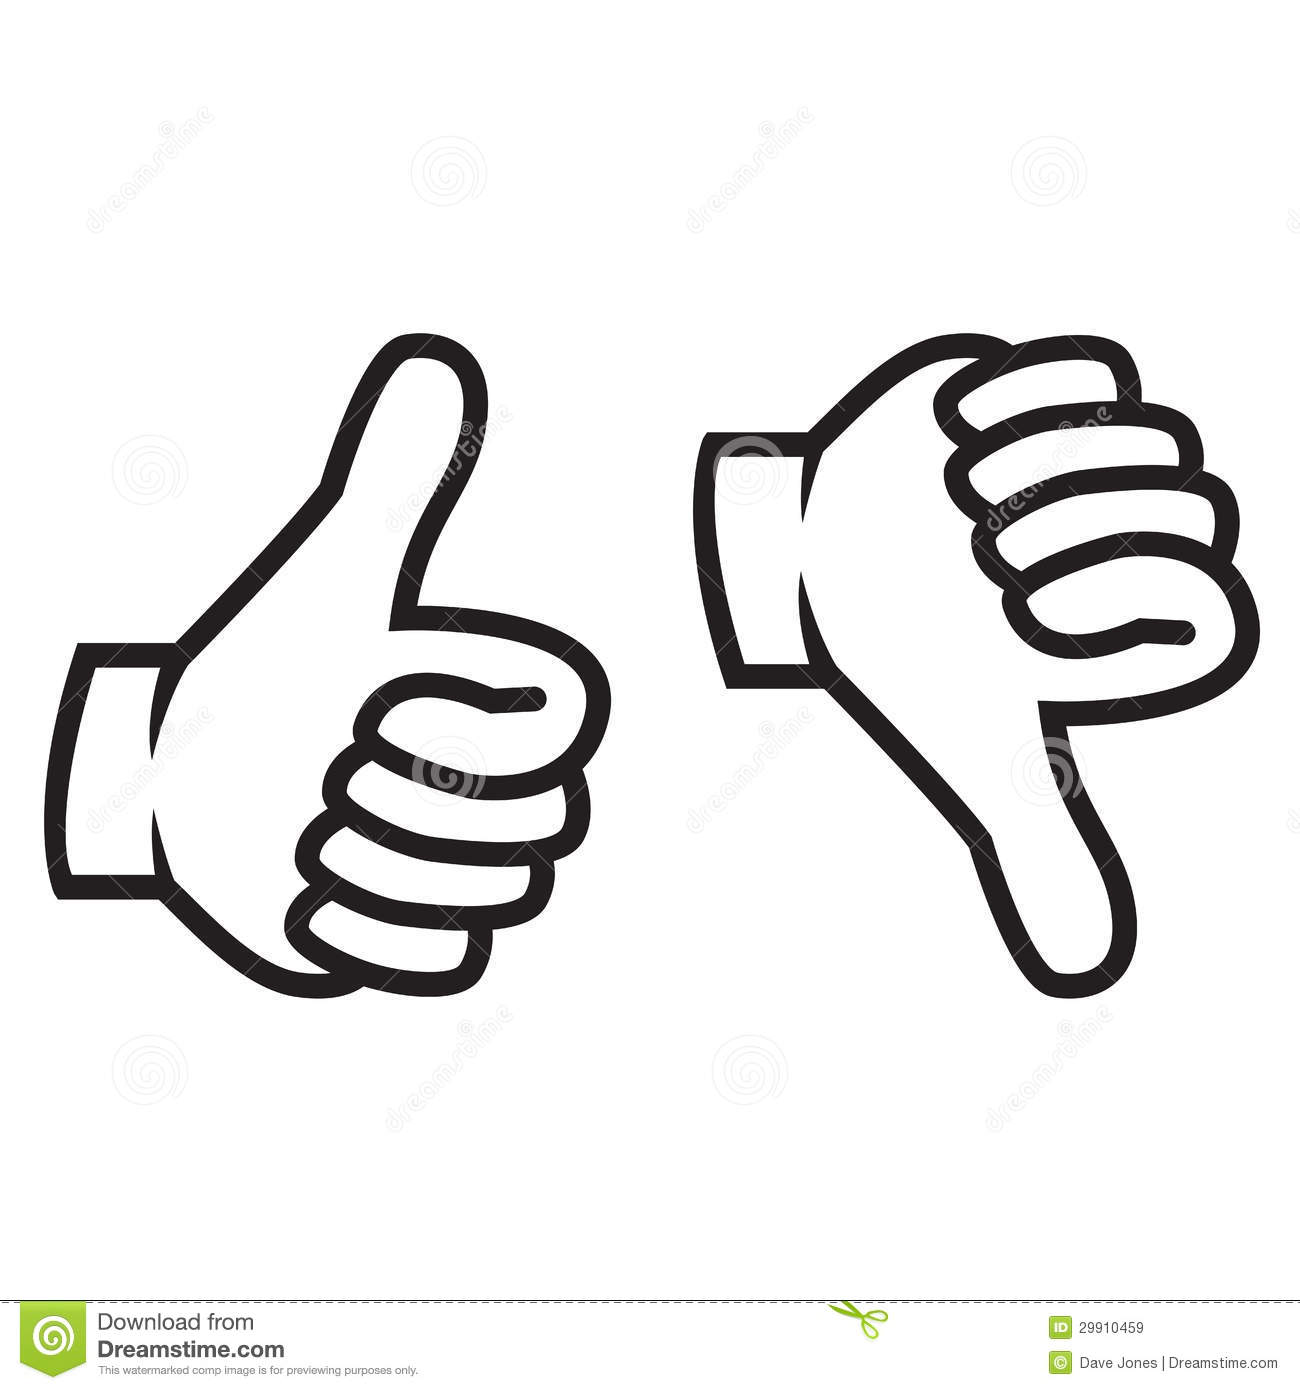 2 thumbs up clipart. Two kid down gesture